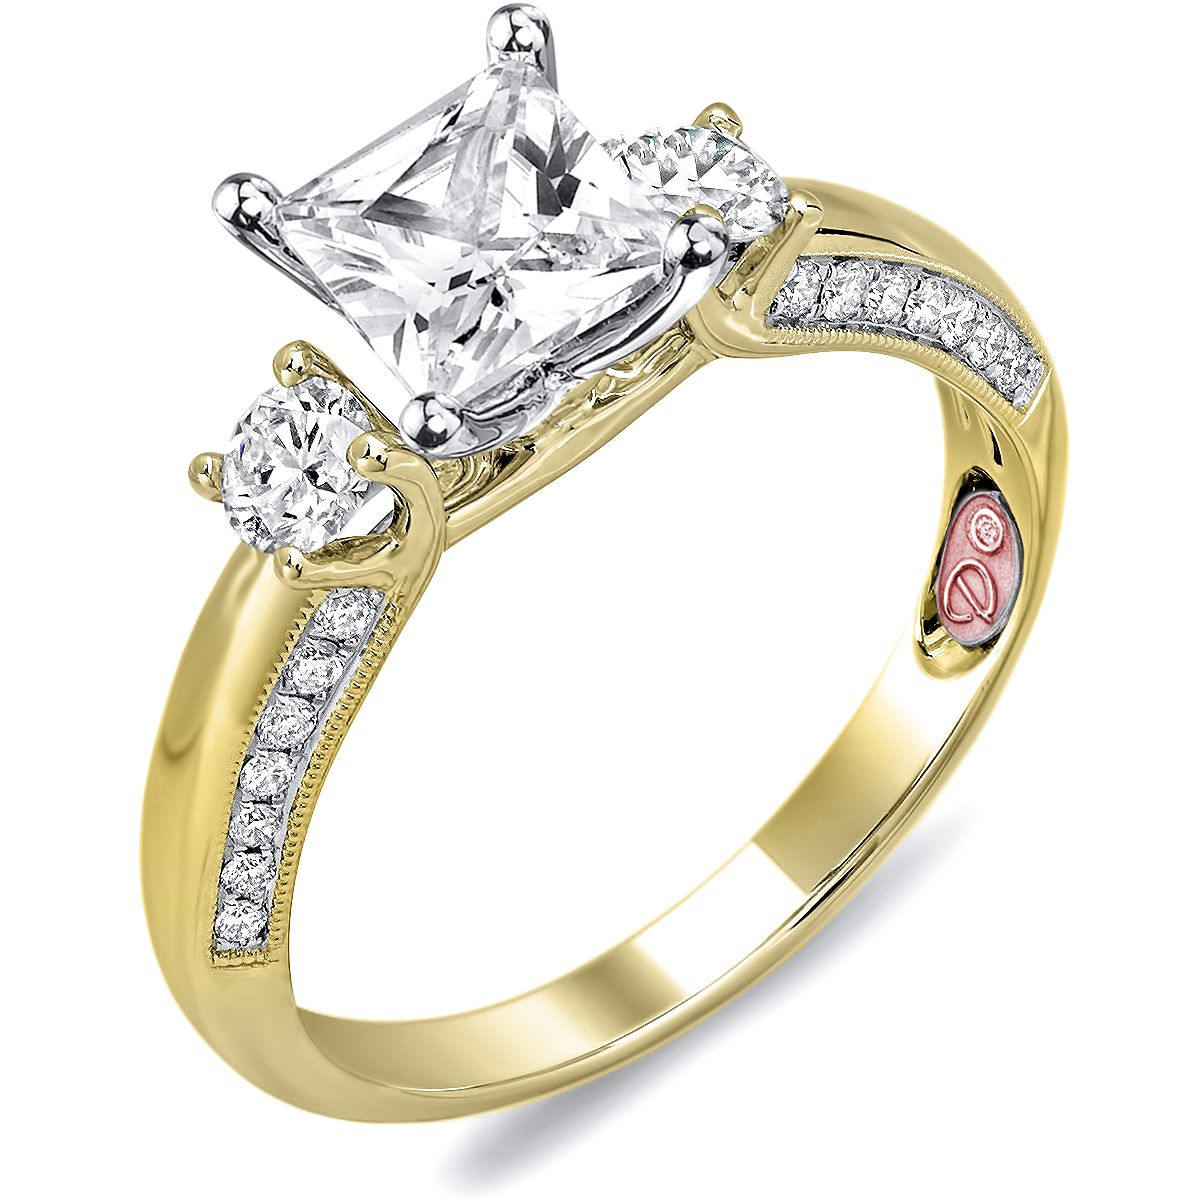 Designer Engagement Rings from DemarcoJewelry.com Available in ...